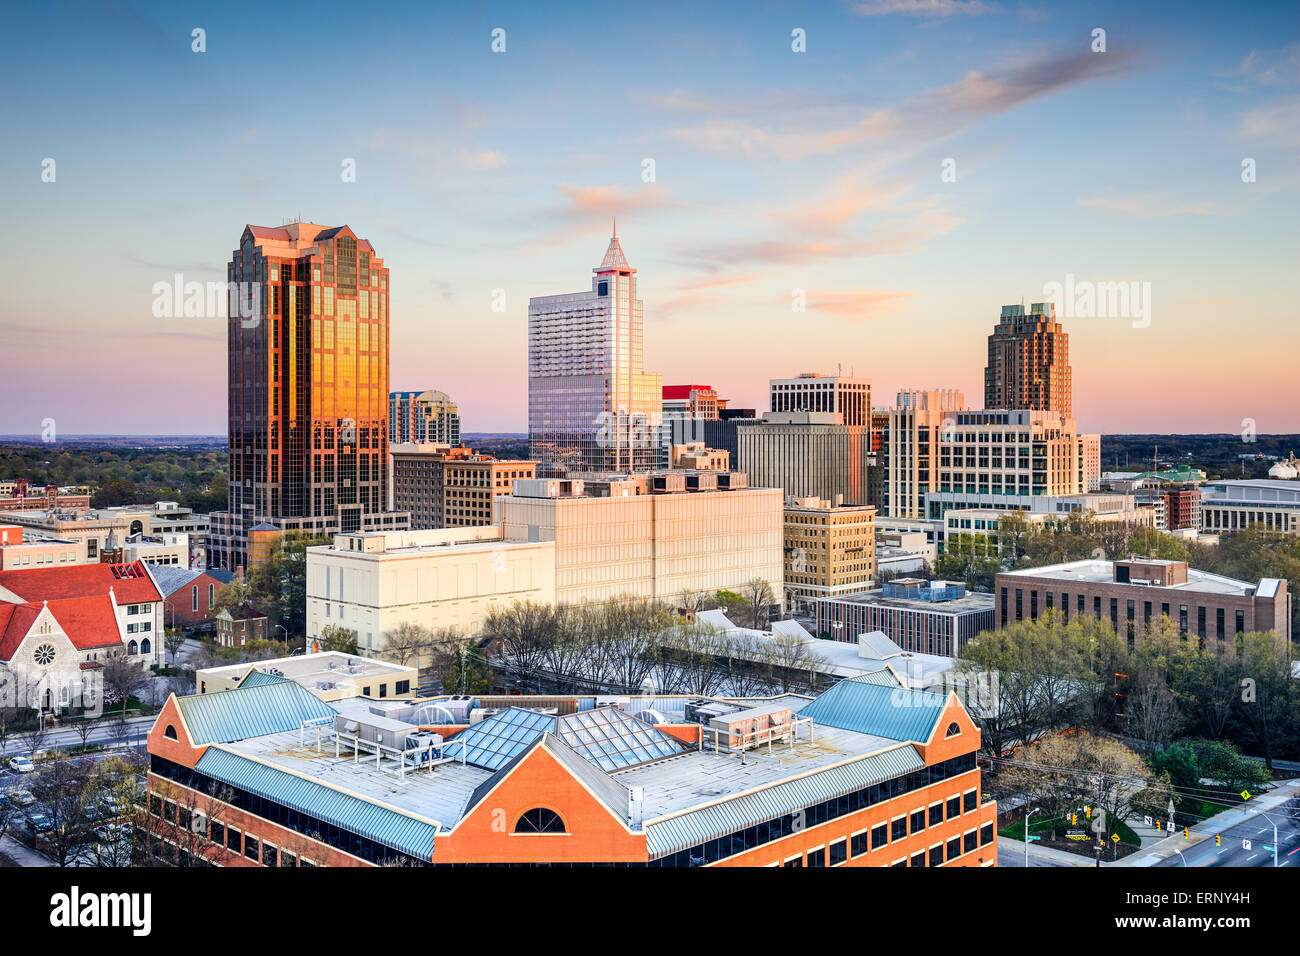 Raleigh, North Carolina, USA downtown city skyline. - Stock Image